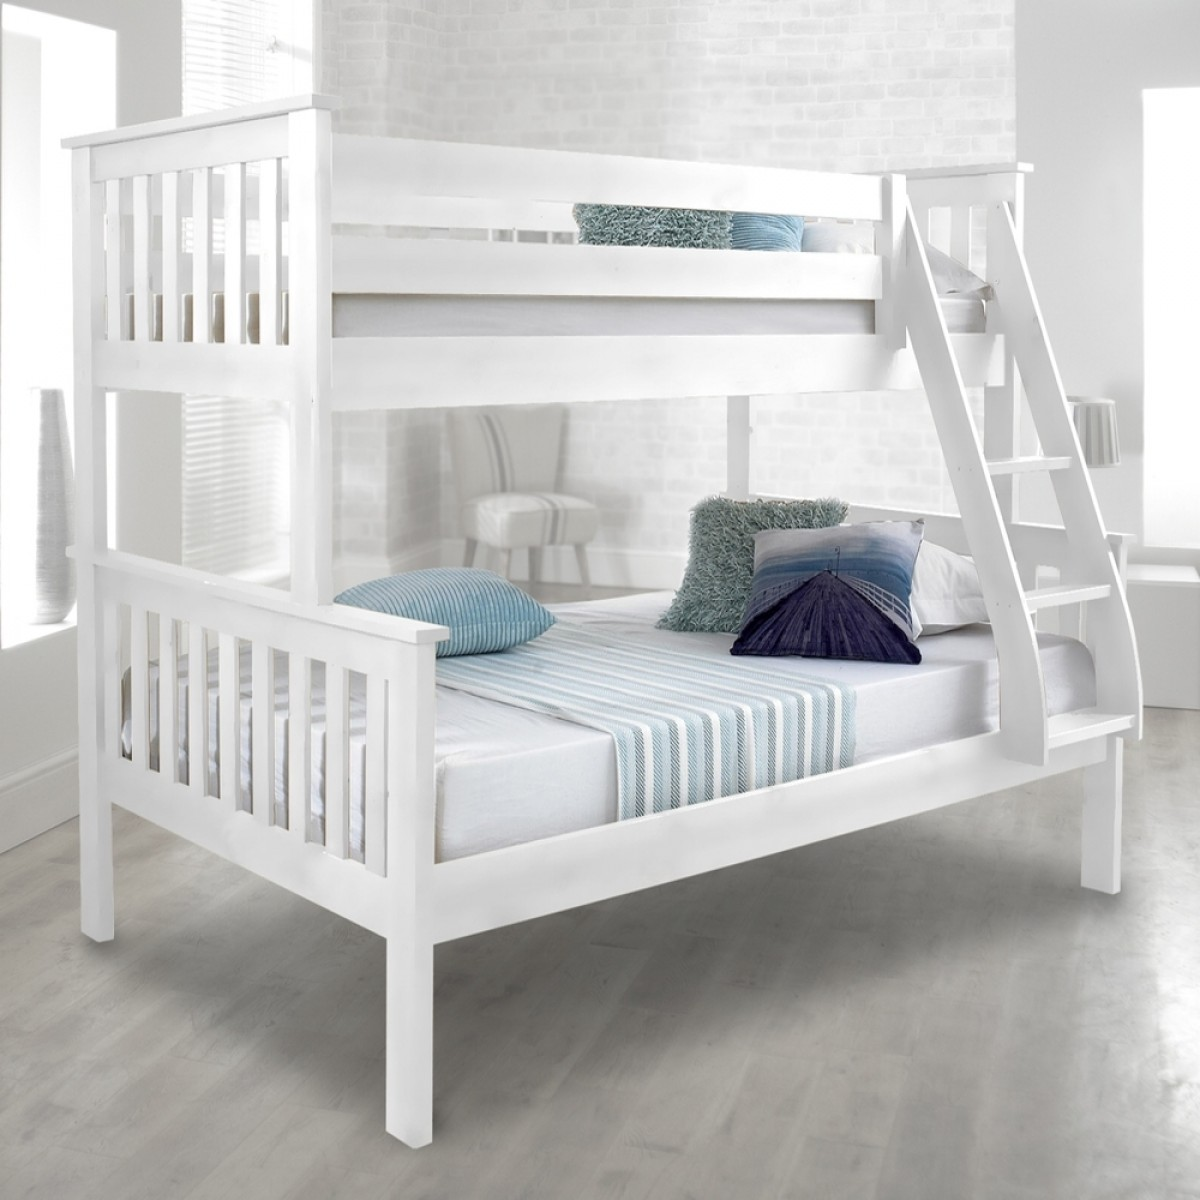 atlantis white finish solid pine wooden triple sleeper bunk bed. Black Bedroom Furniture Sets. Home Design Ideas